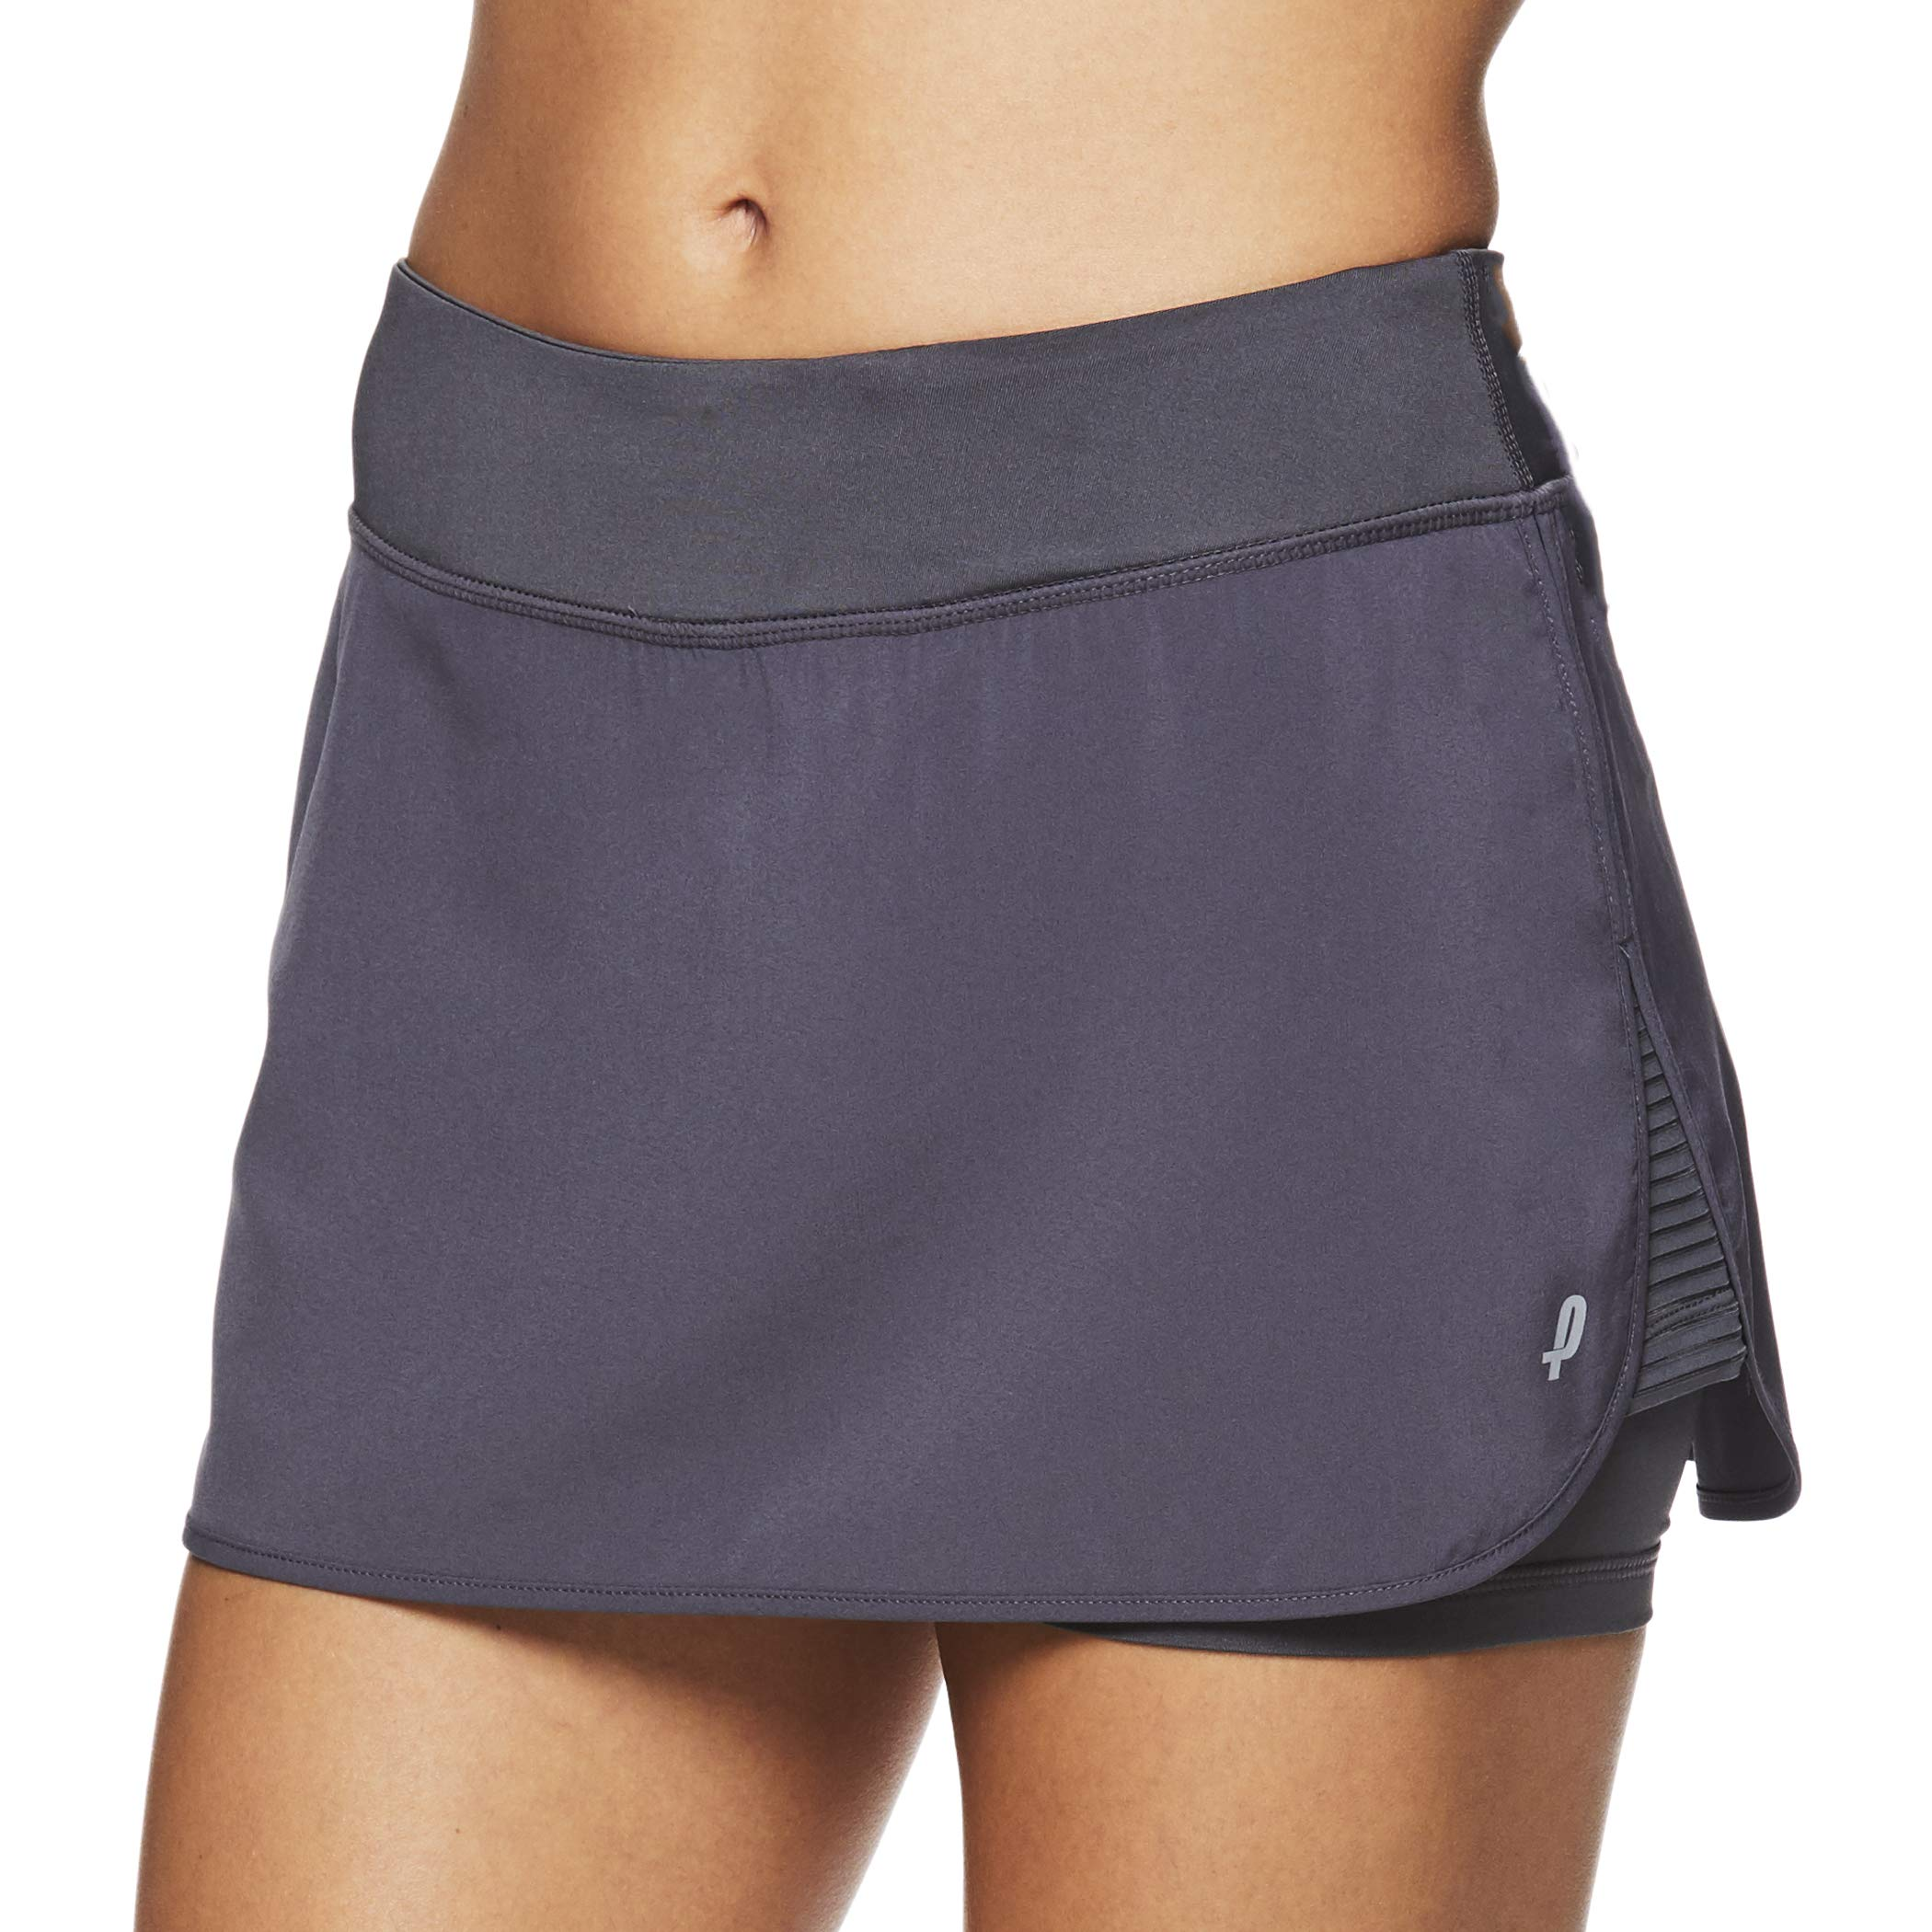 Penn Women's Spike Athletic Mini Skort for Performance Training Tennis Golf & Running - Medium Grey, X-Small